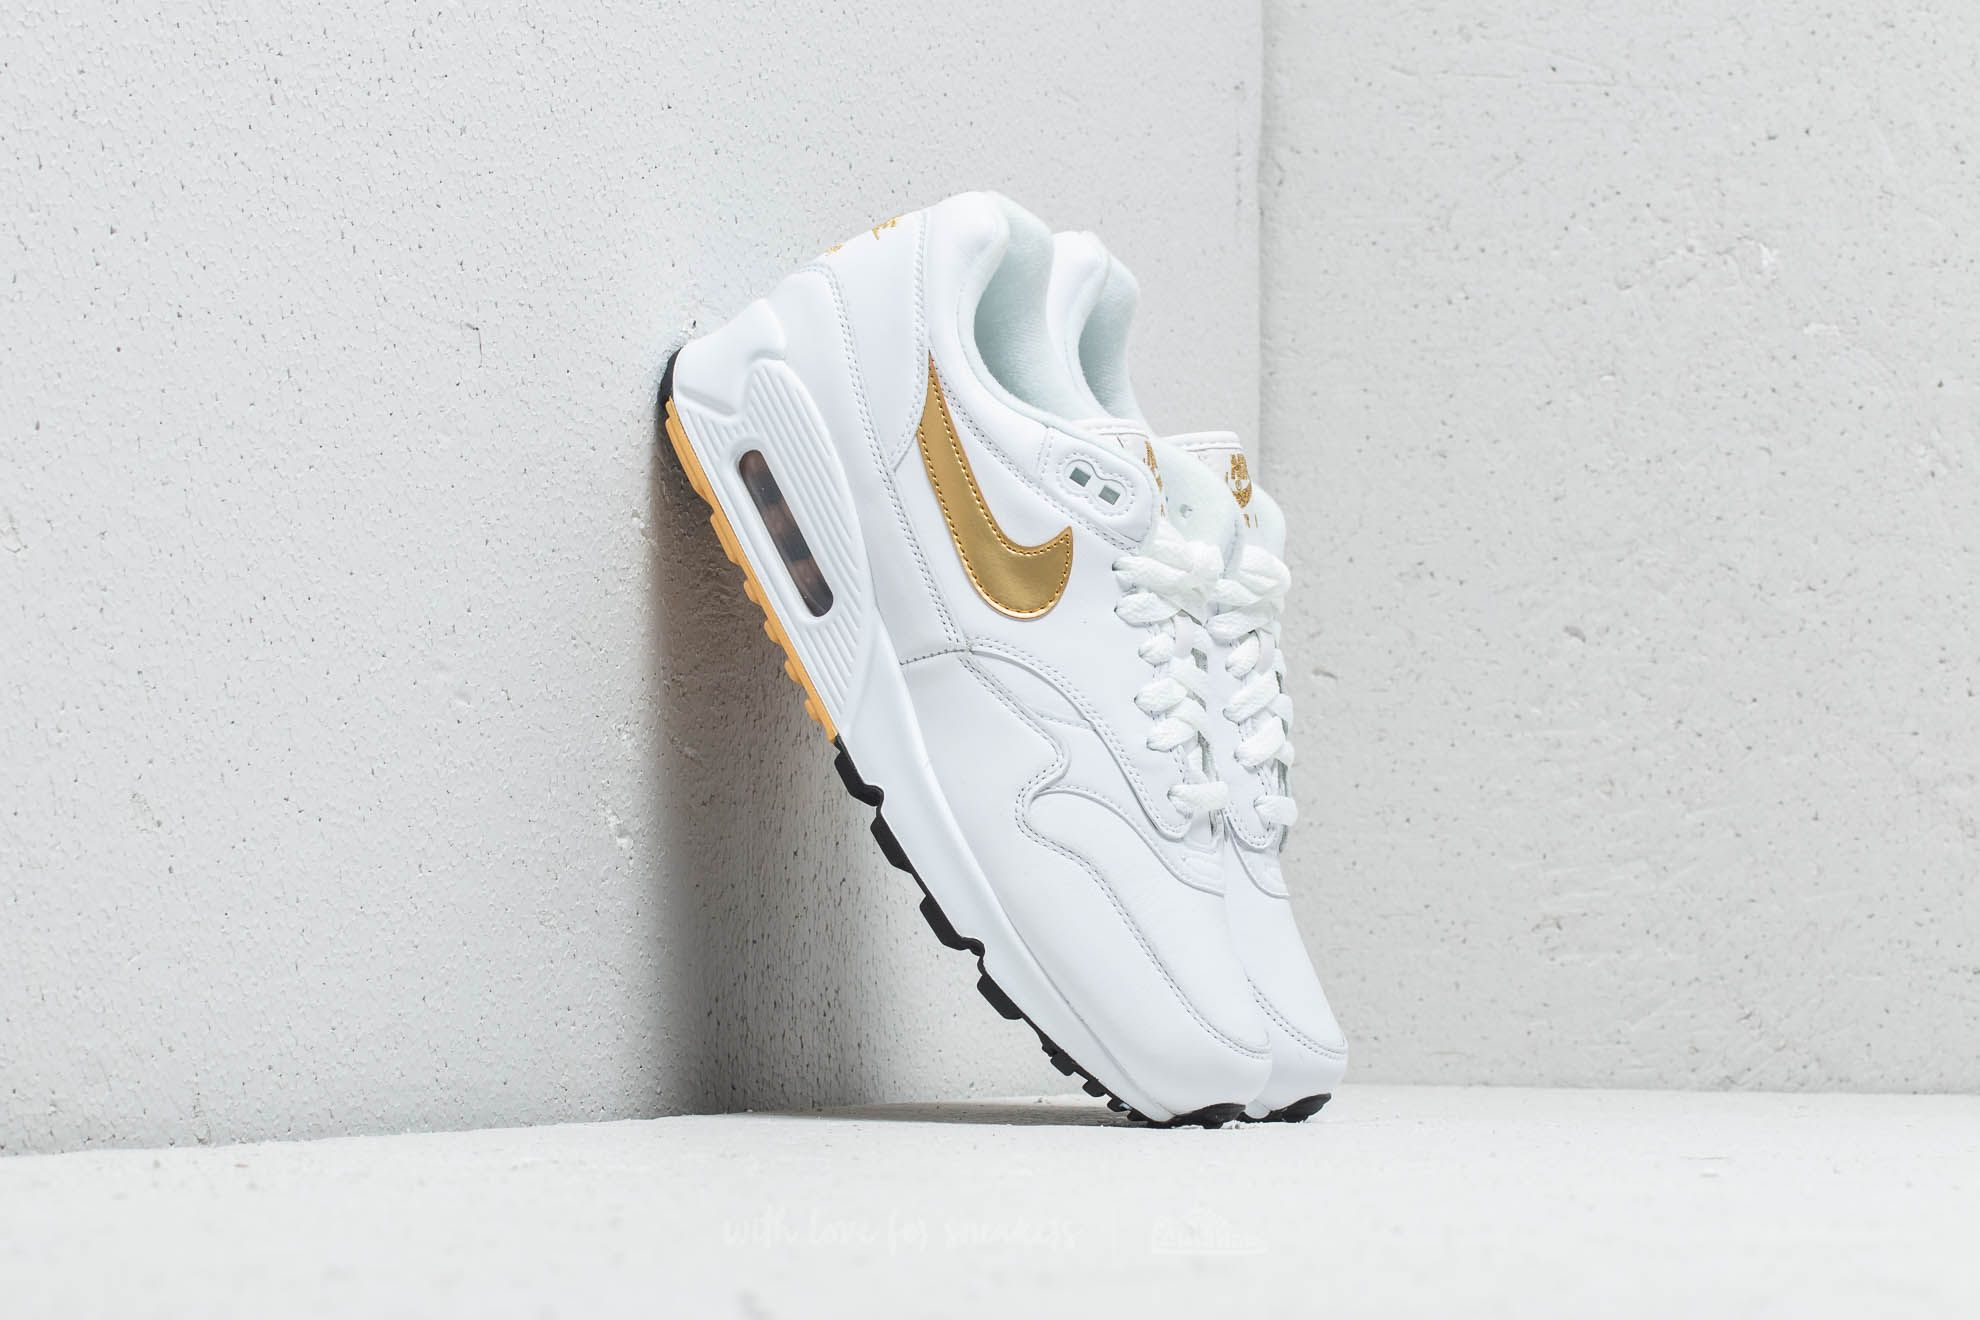 size 40 ae04d 16b59 Nike Air Max 90  1. White  Metallic Gold-Black